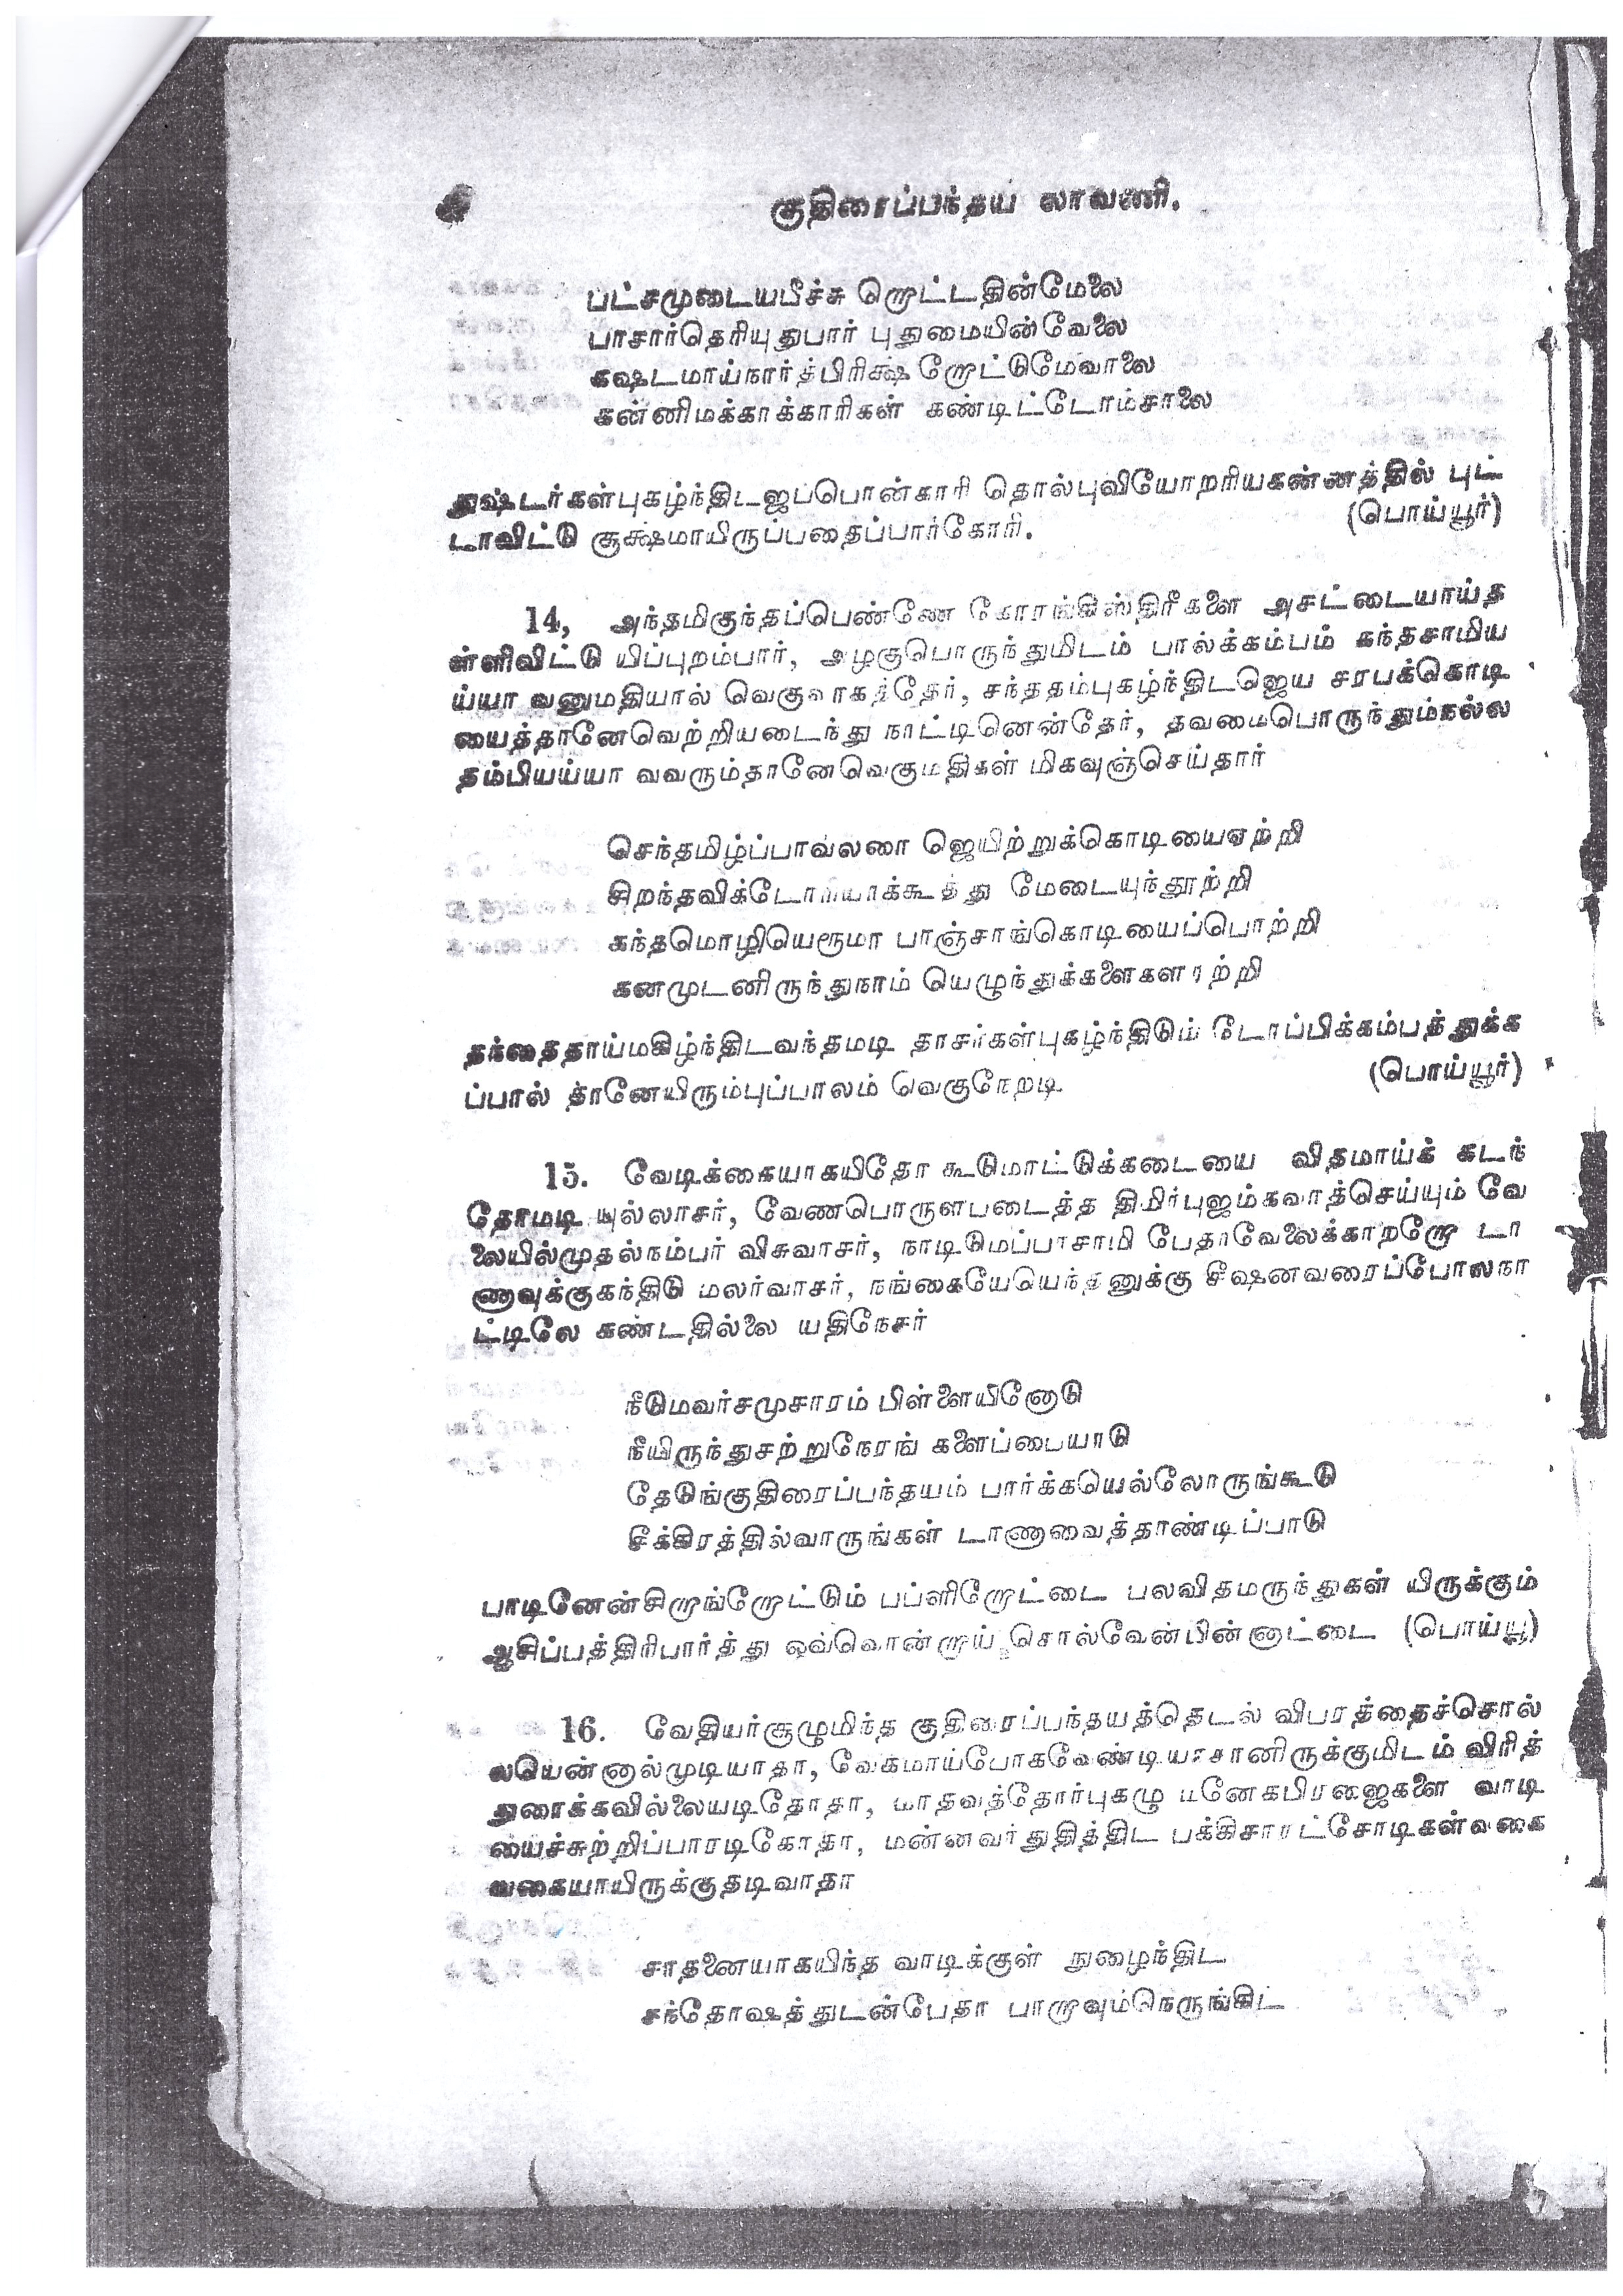 3. Image of Book and Poem 3.jpg